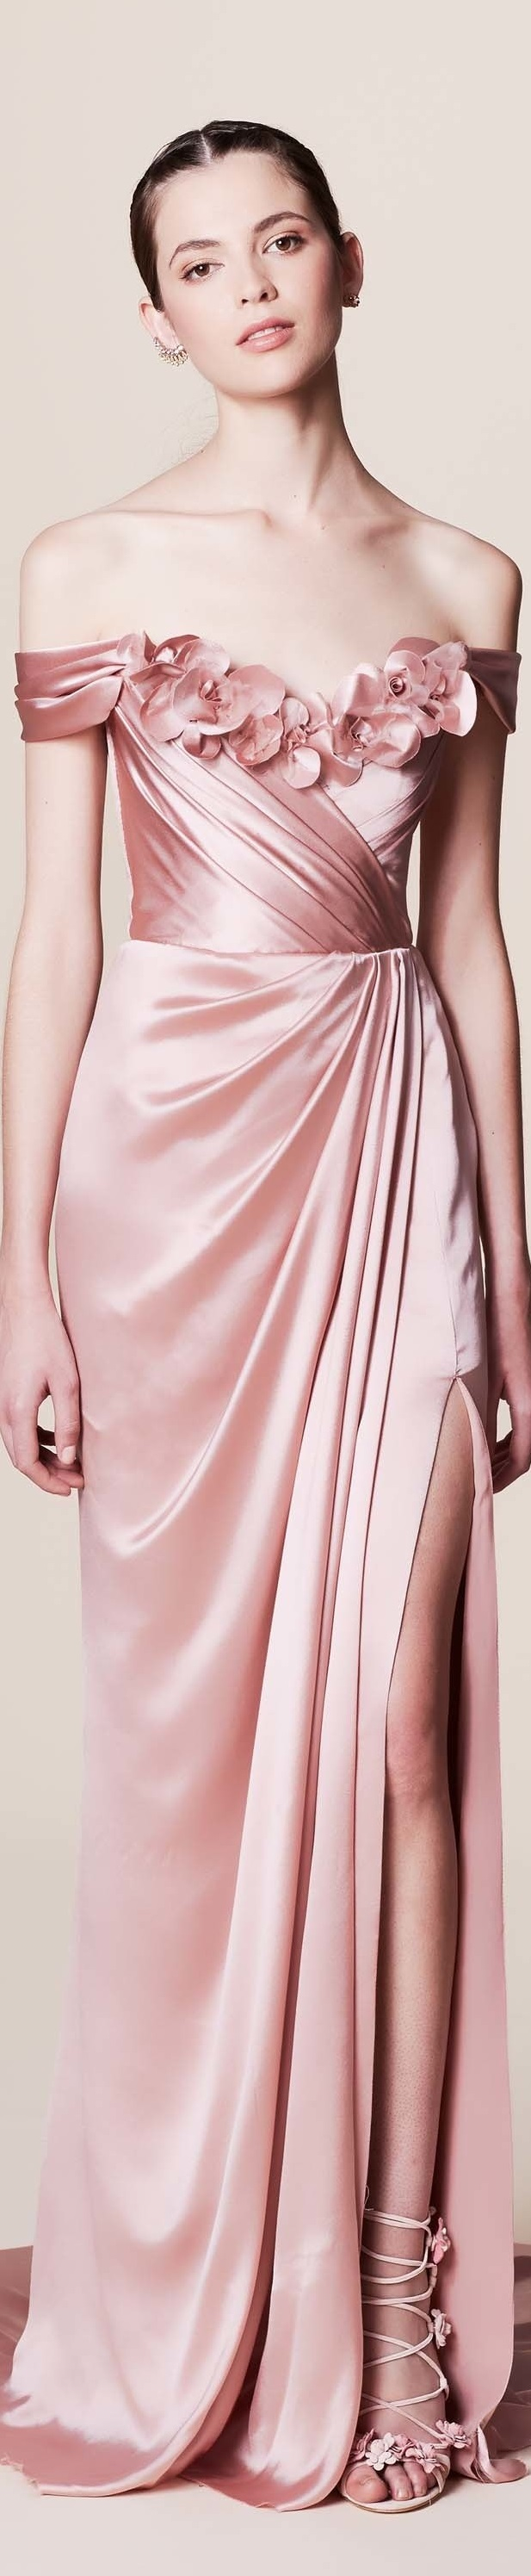 Marchesa resort 2017 vogue | Color rosa | Pinterest | Vestiditos ...